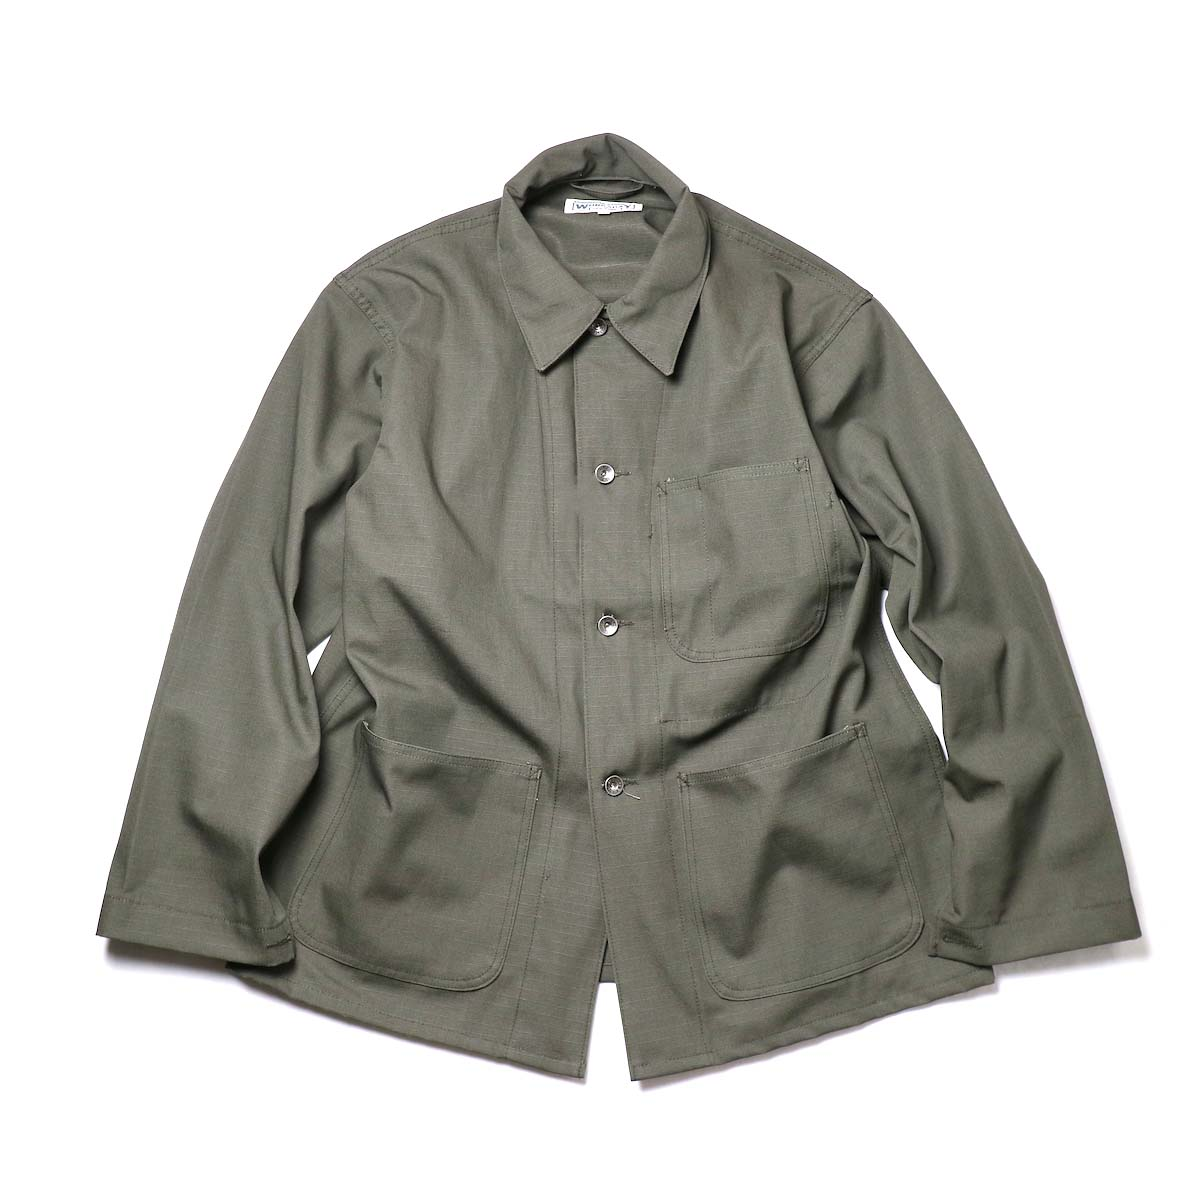 Engineered Garments Workaday / Utility Jacket - Cotton Ripstop (Olive)正面